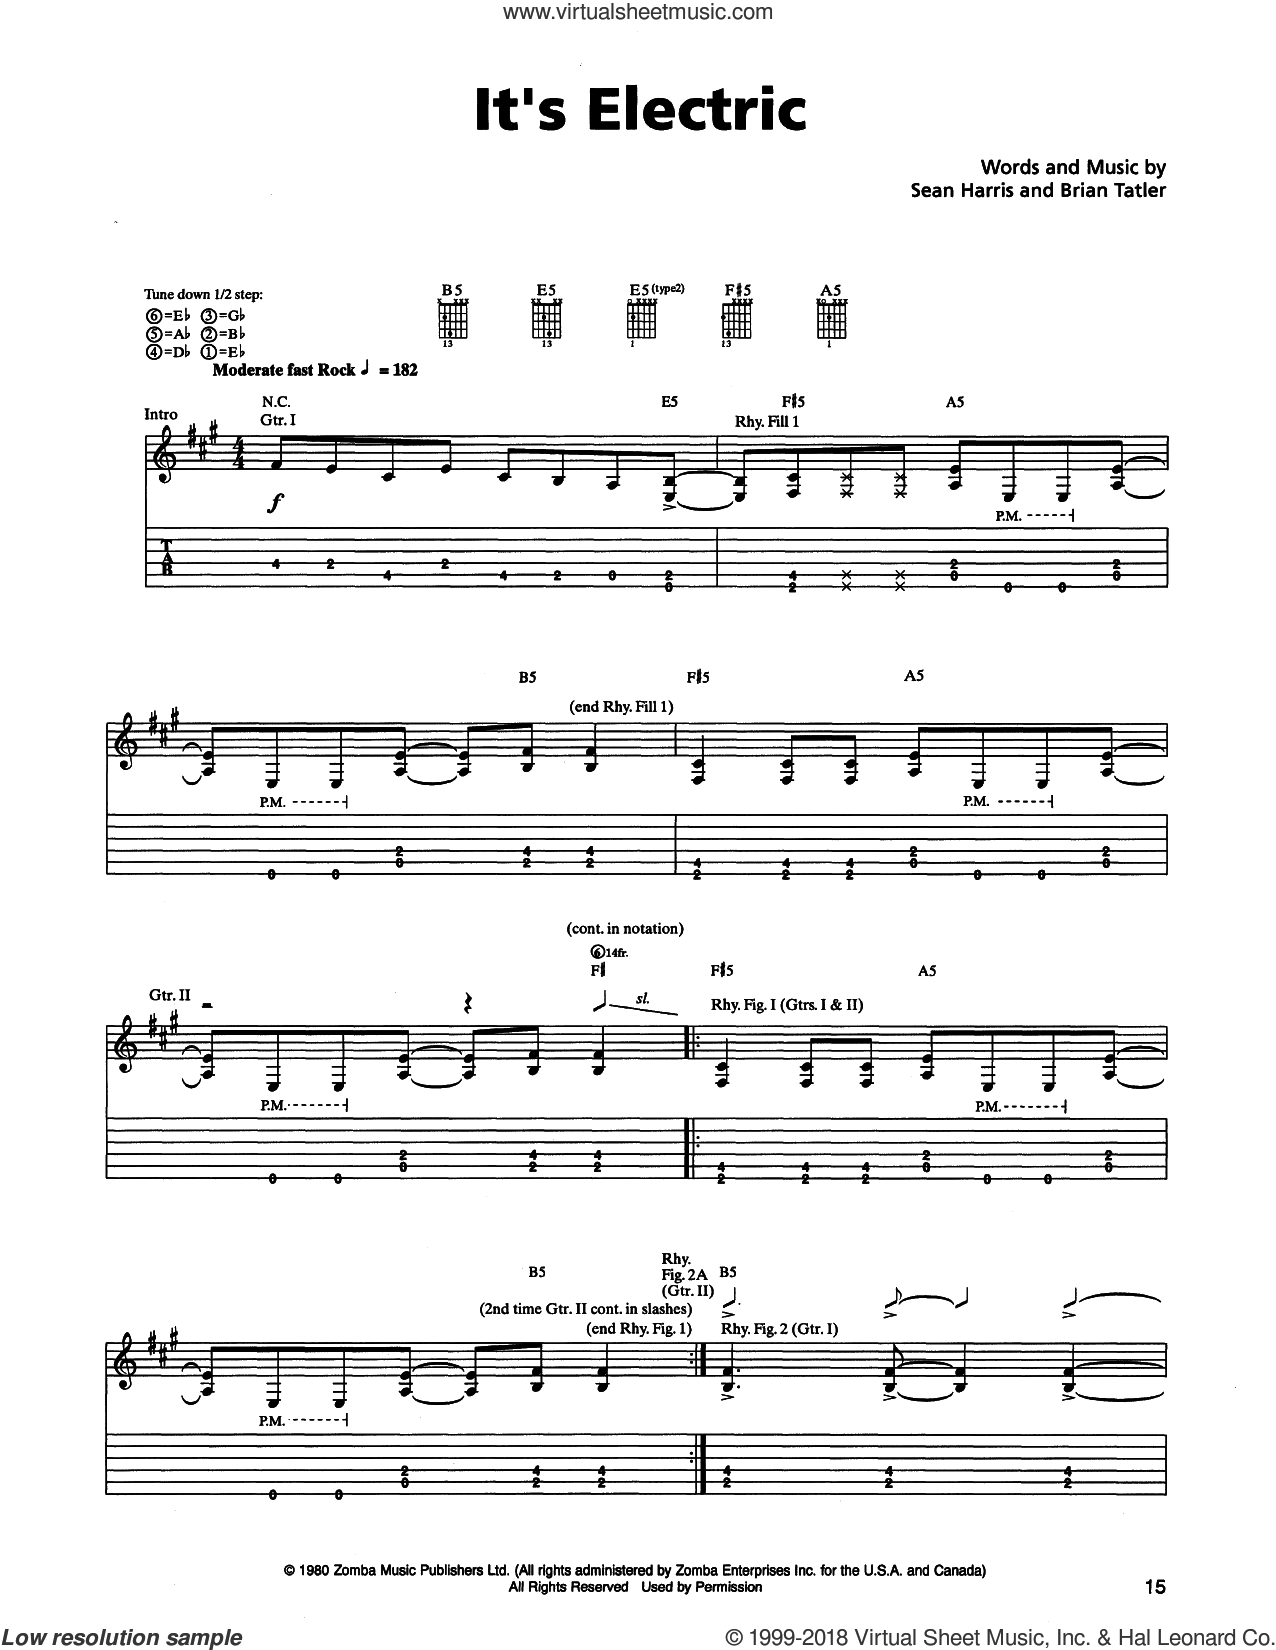 It's Electric sheet music for guitar (tablature) by Metallica, Brian Tatler and Sean Harris, intermediate skill level